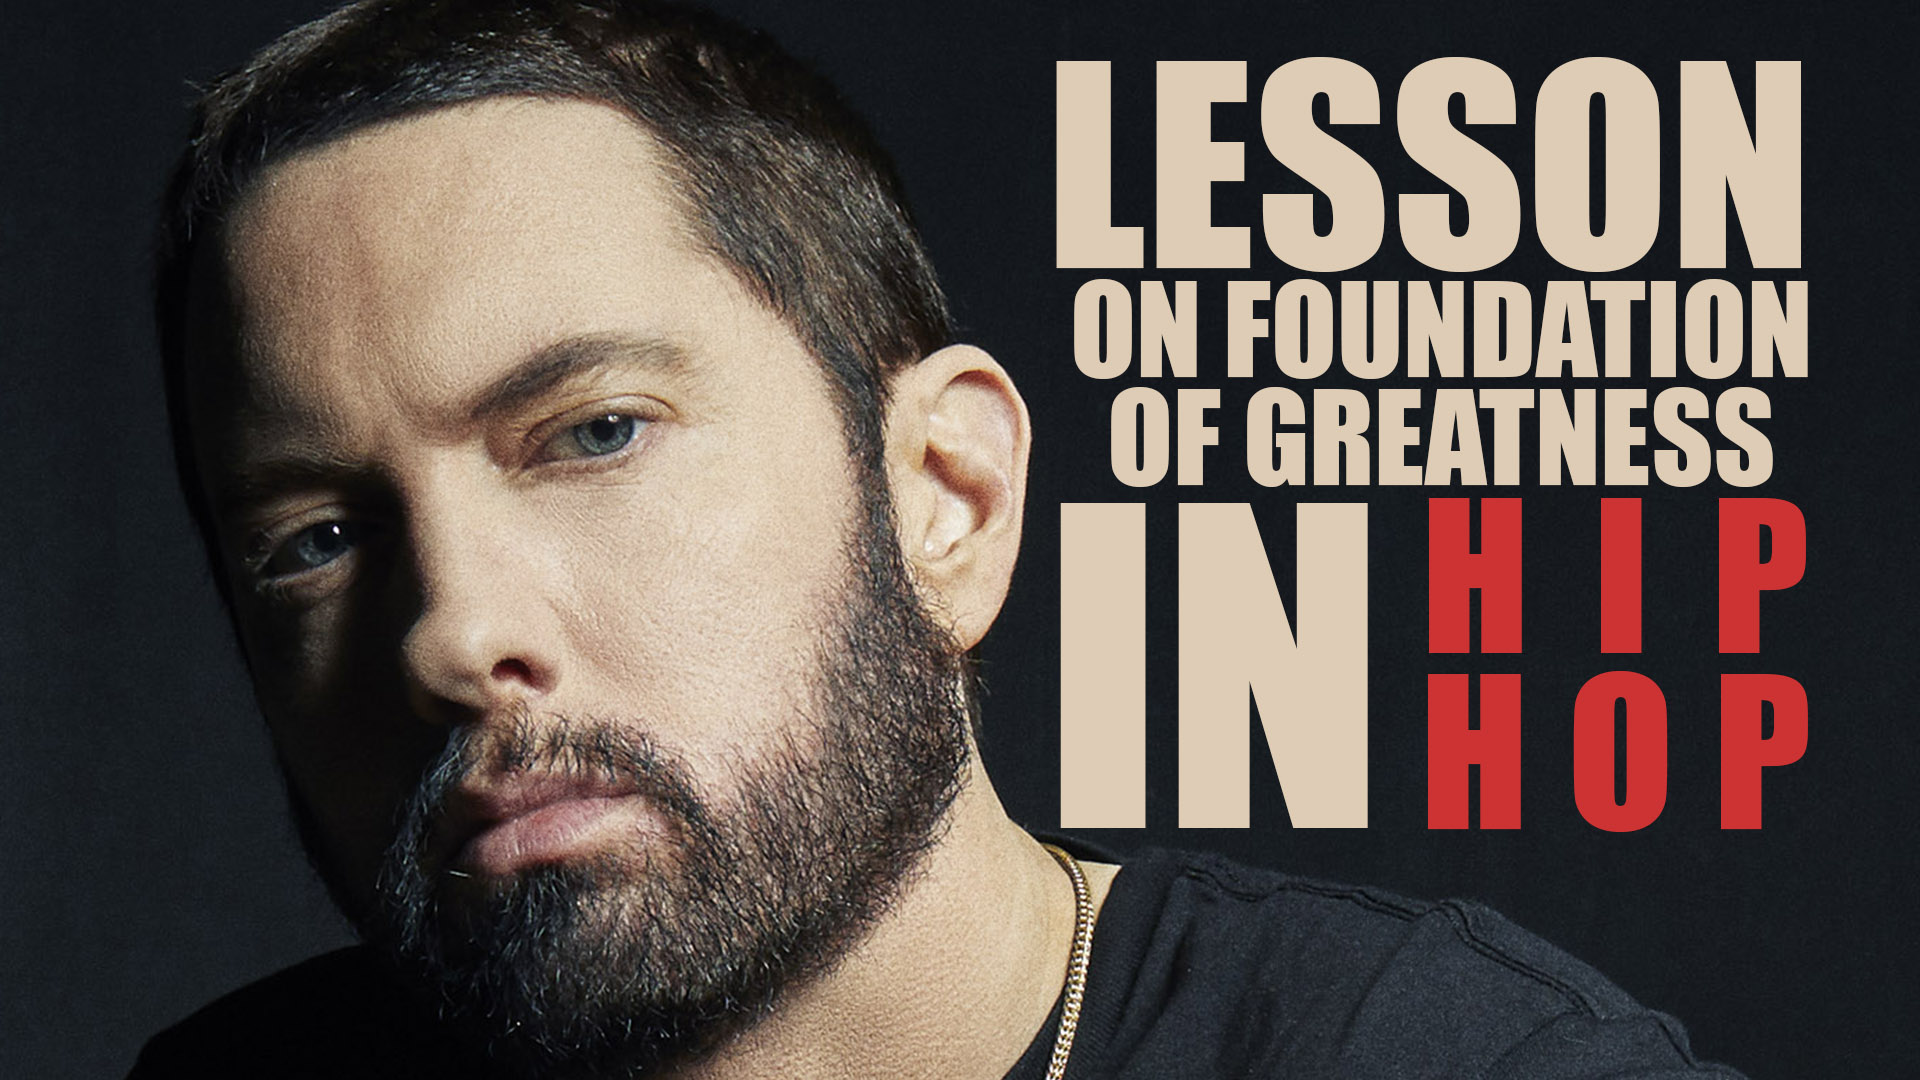 Eminem Gives a Lesson on Foundation of Greatness in Hip Hop